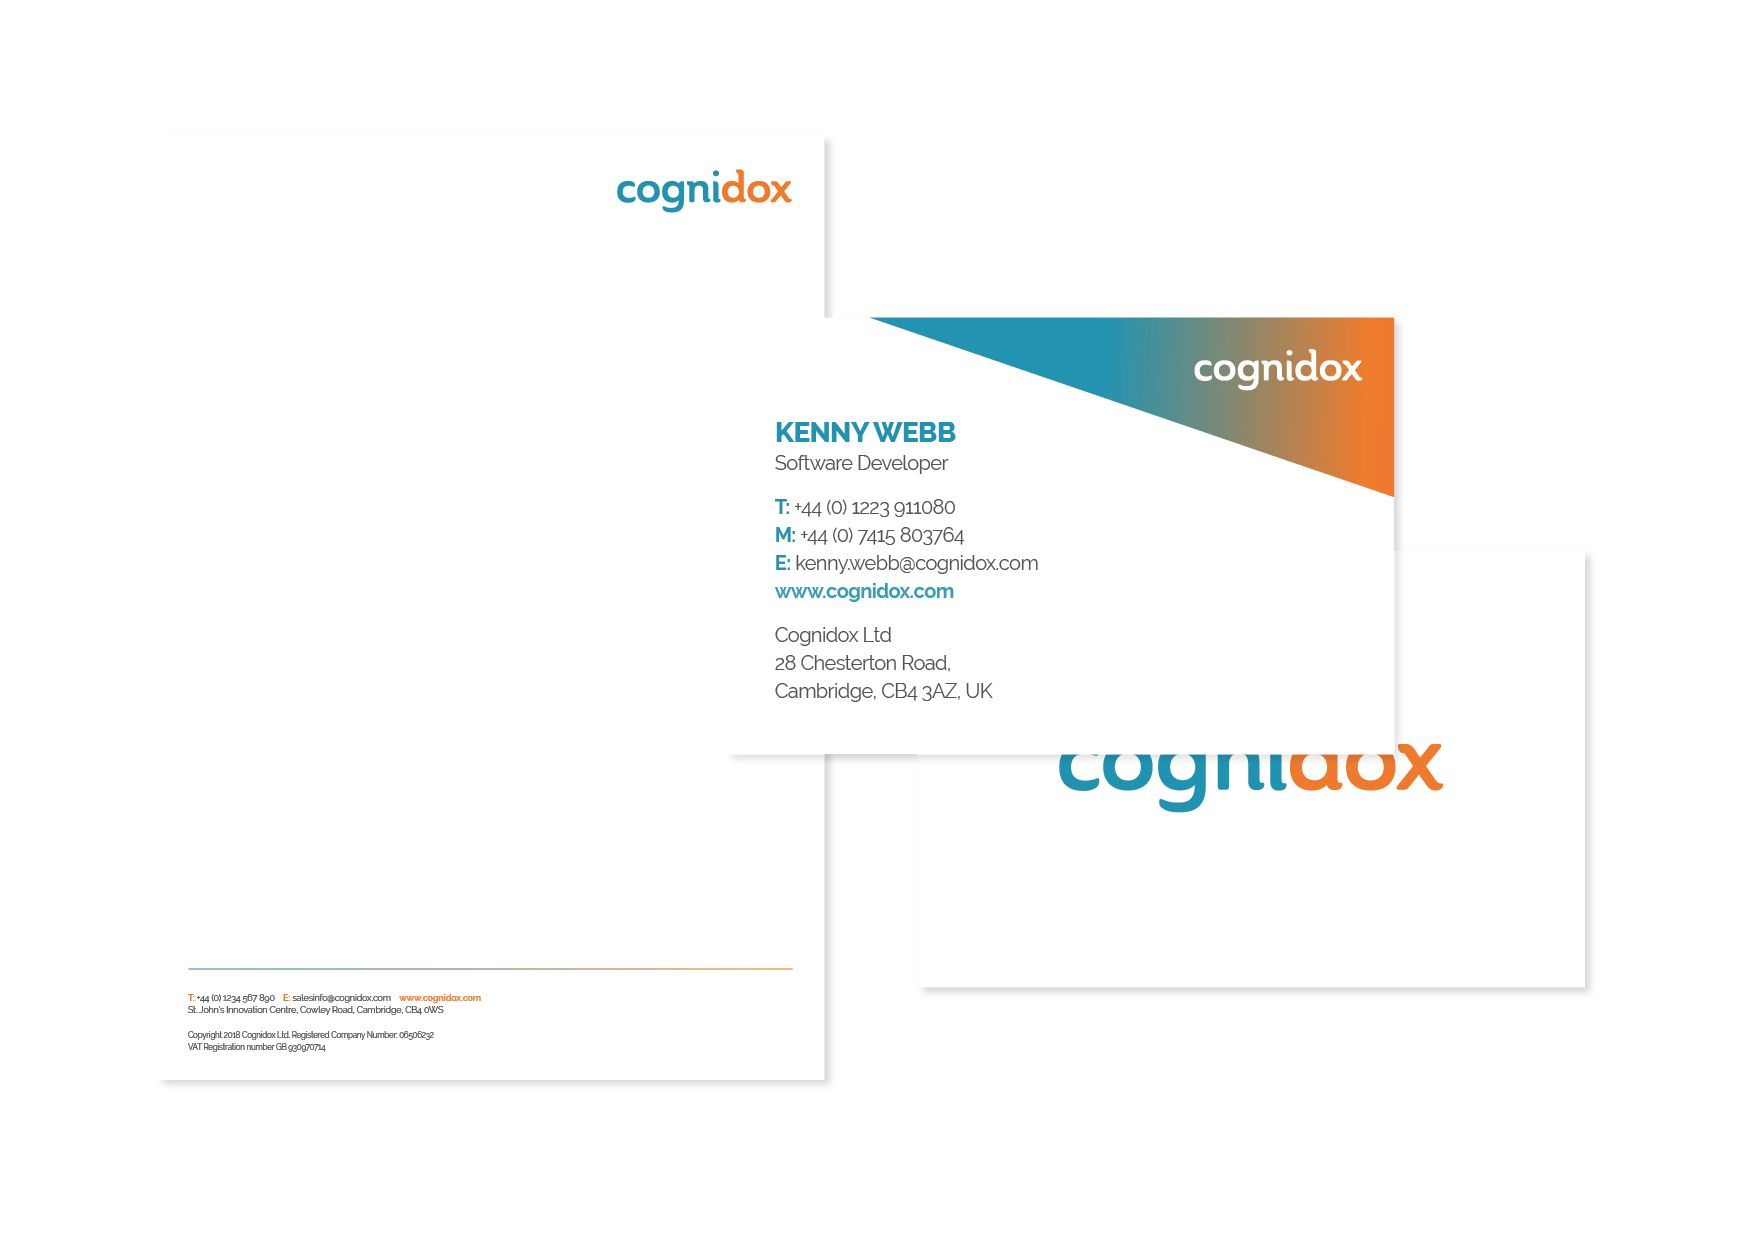 cognidox-web-print-digital-ebooks-equinet-media12